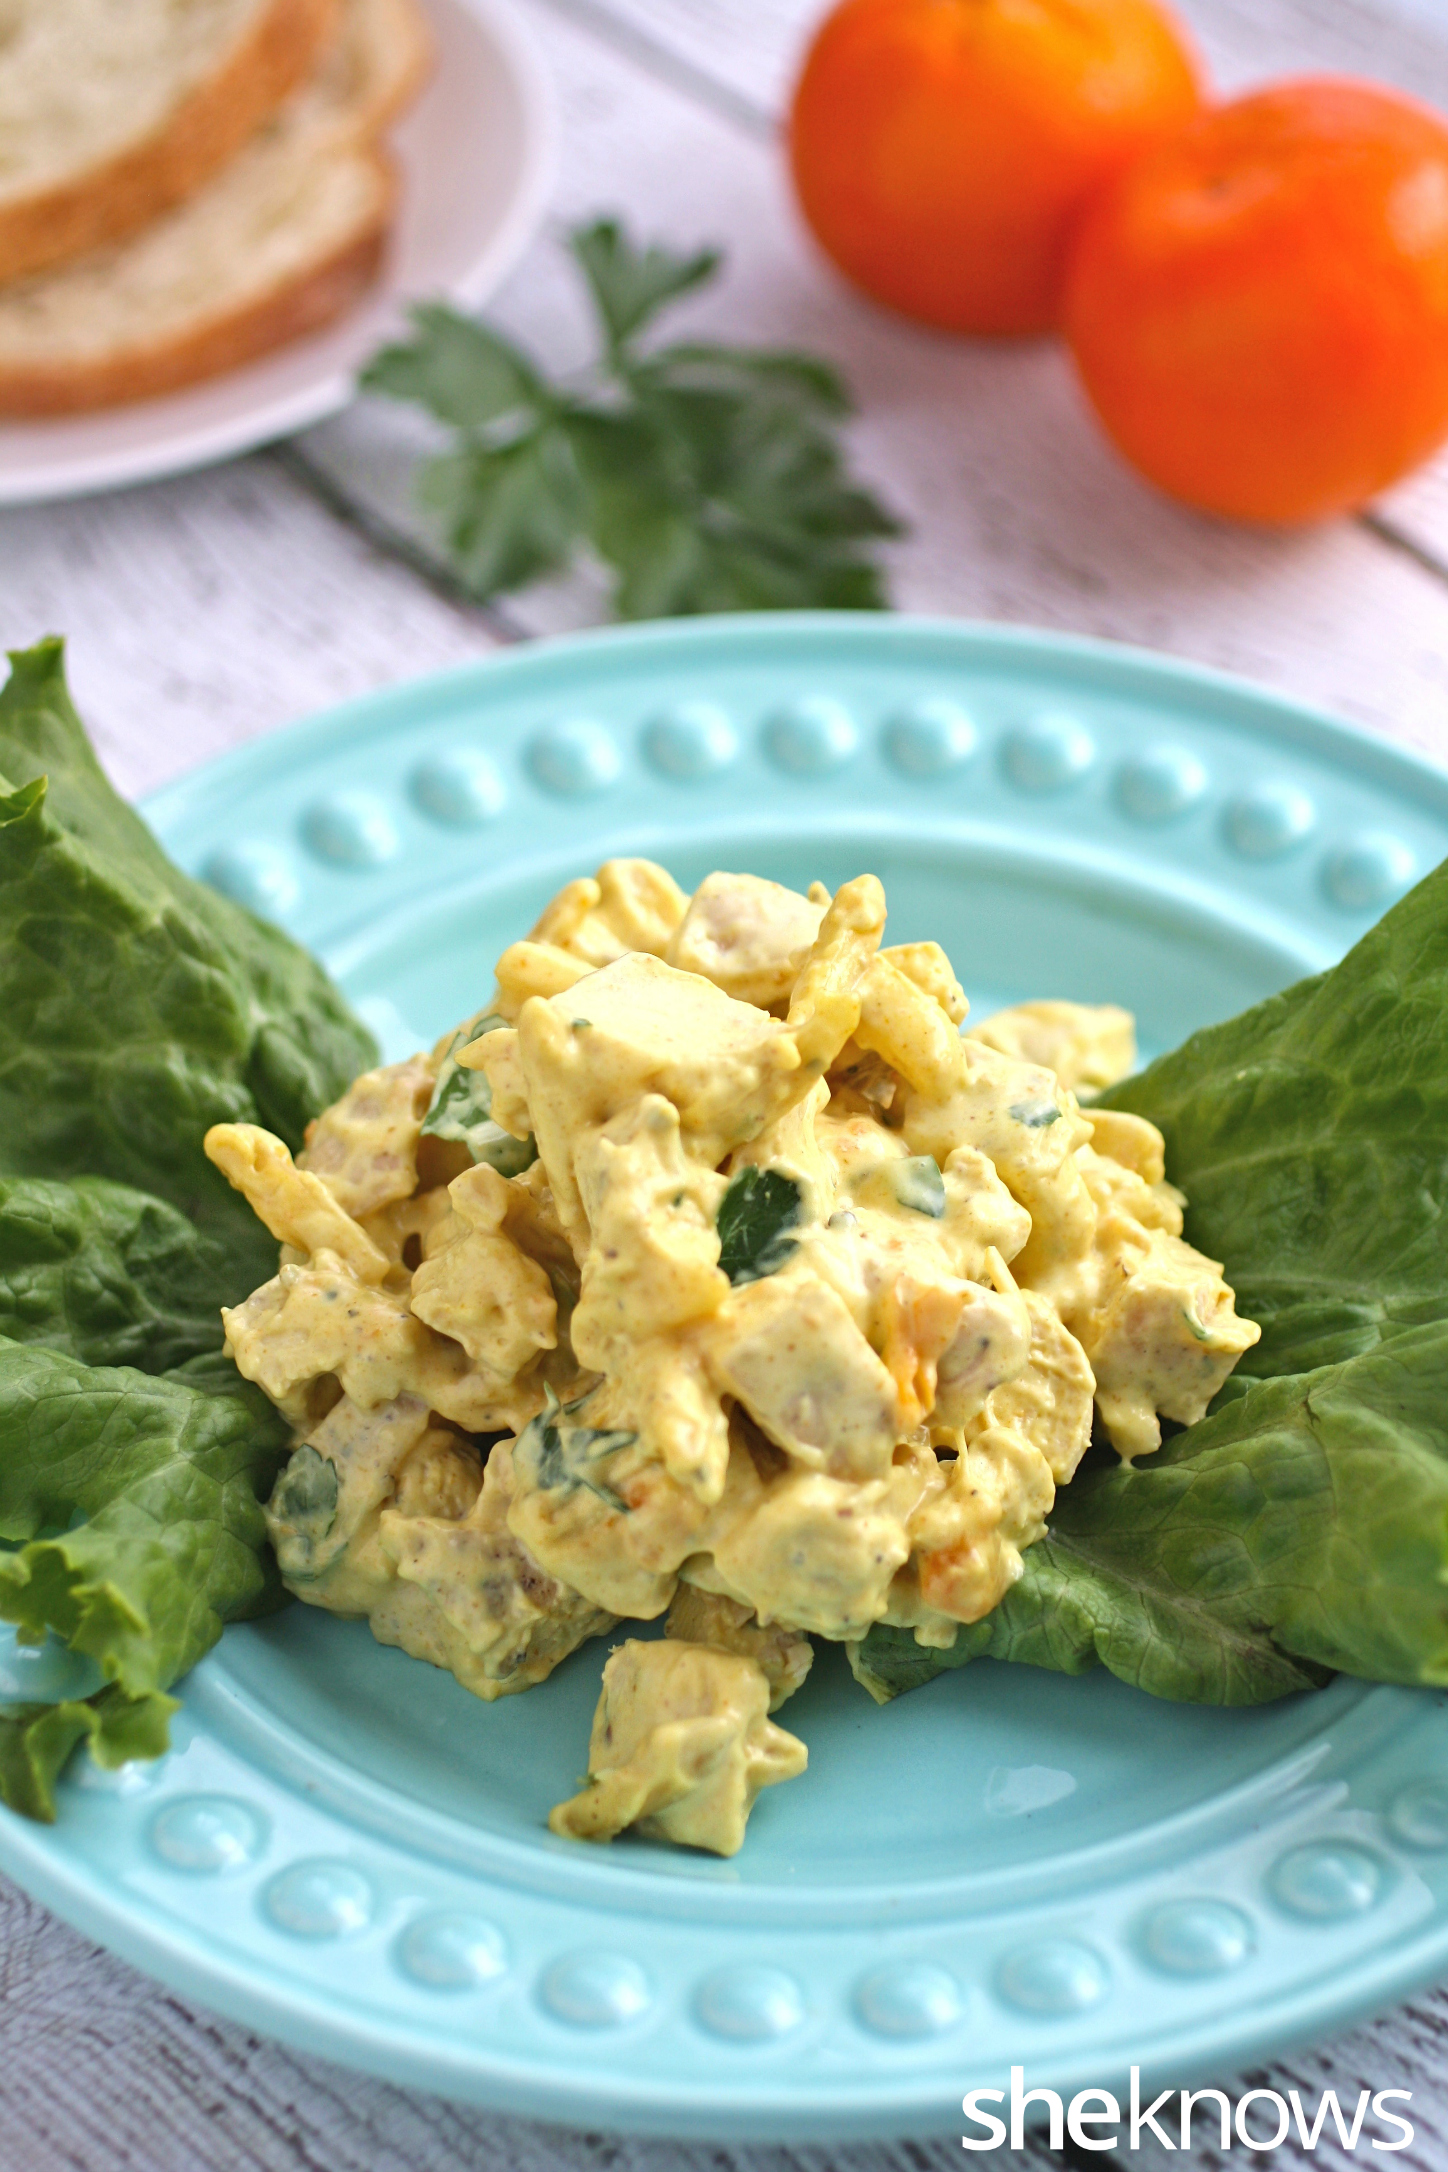 Coronation chicken salad with toasted almonds recipe